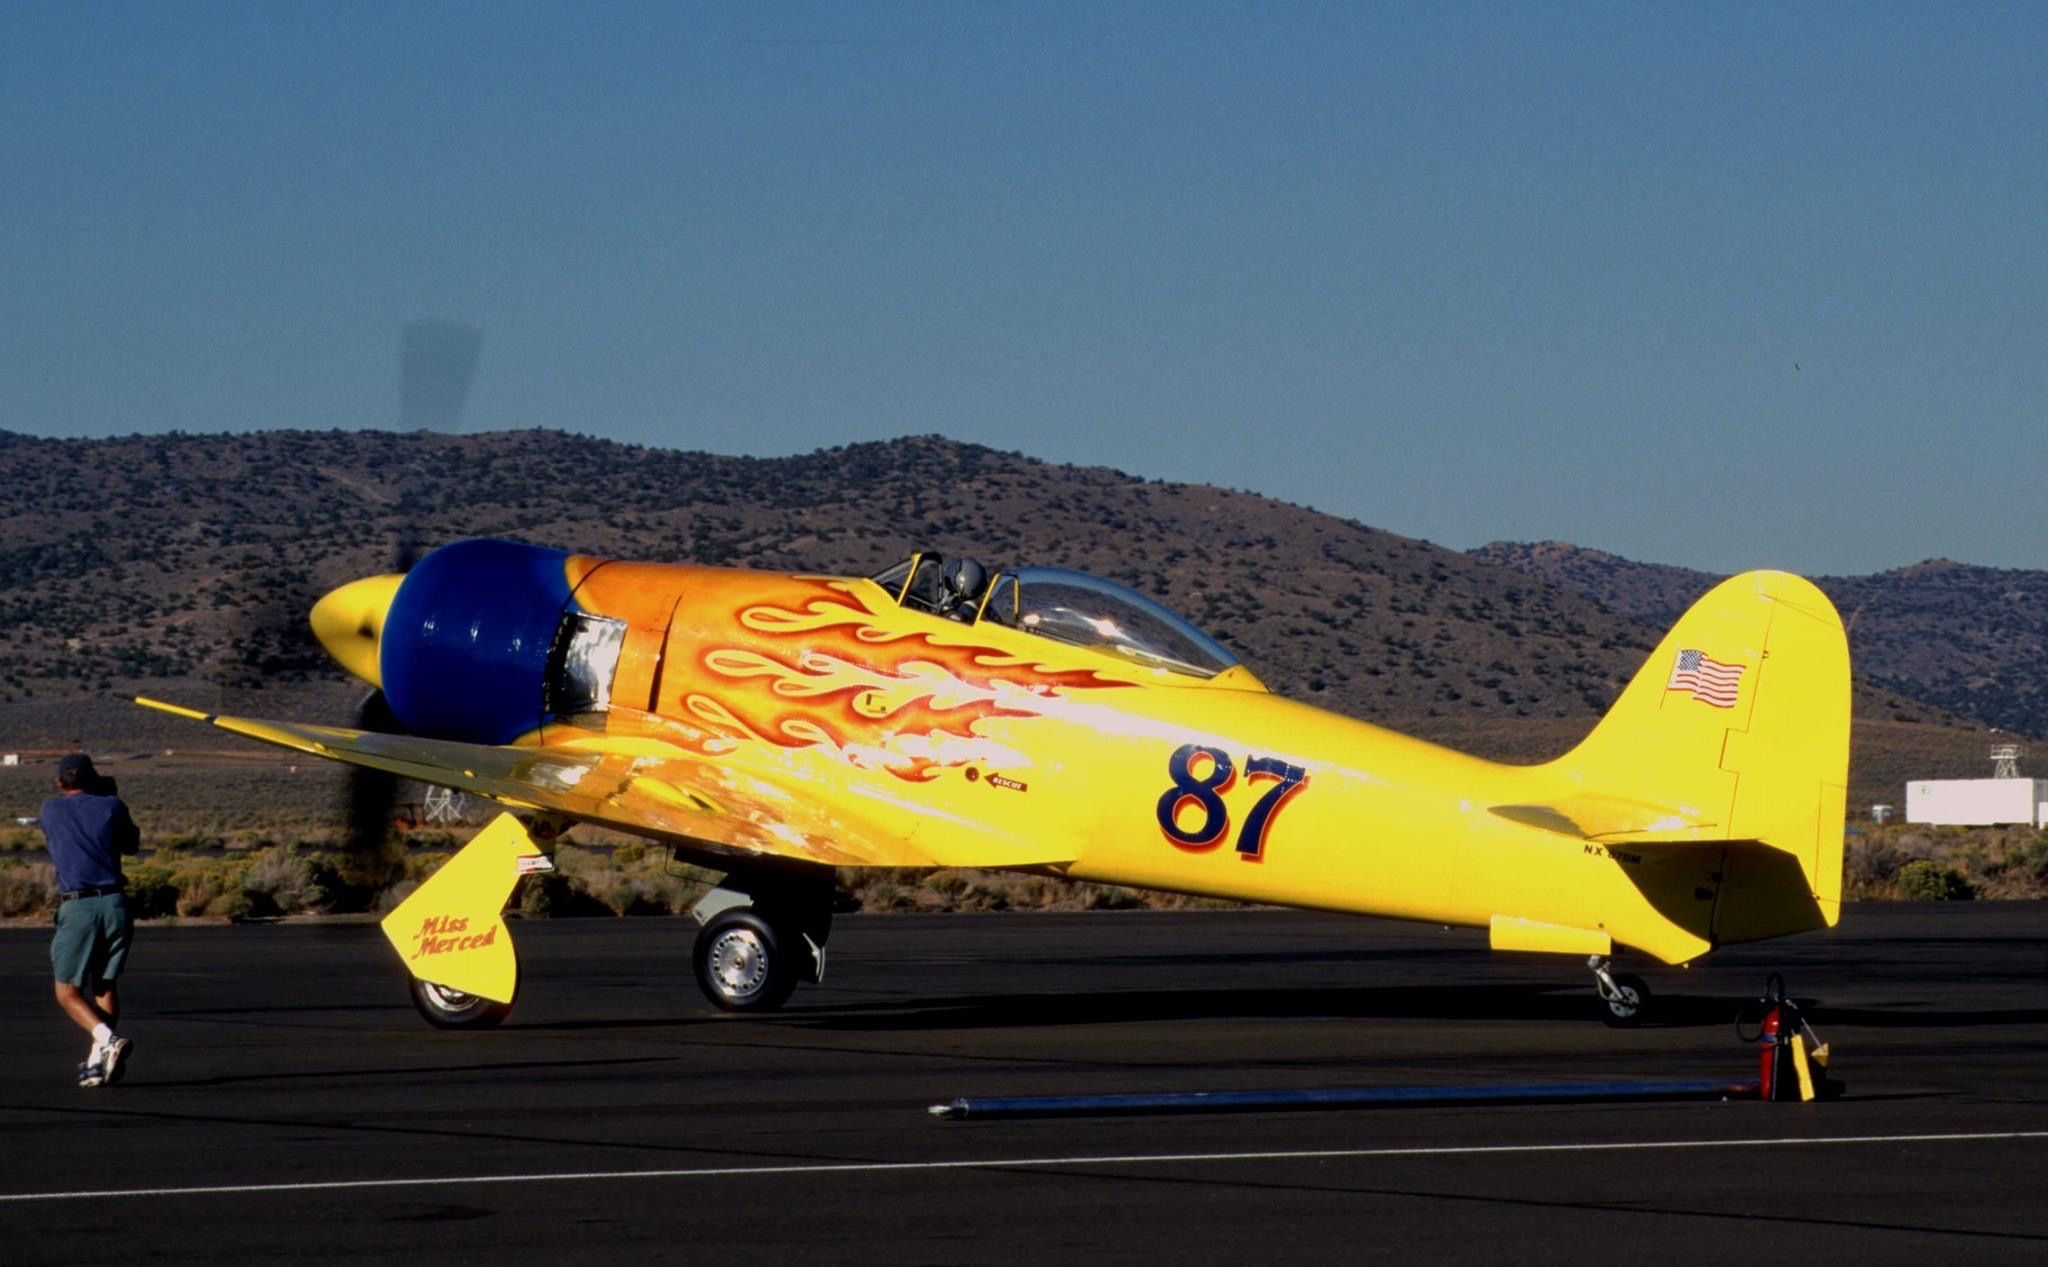 Pin by James Sheppard on Racer in 2020 Reno air races